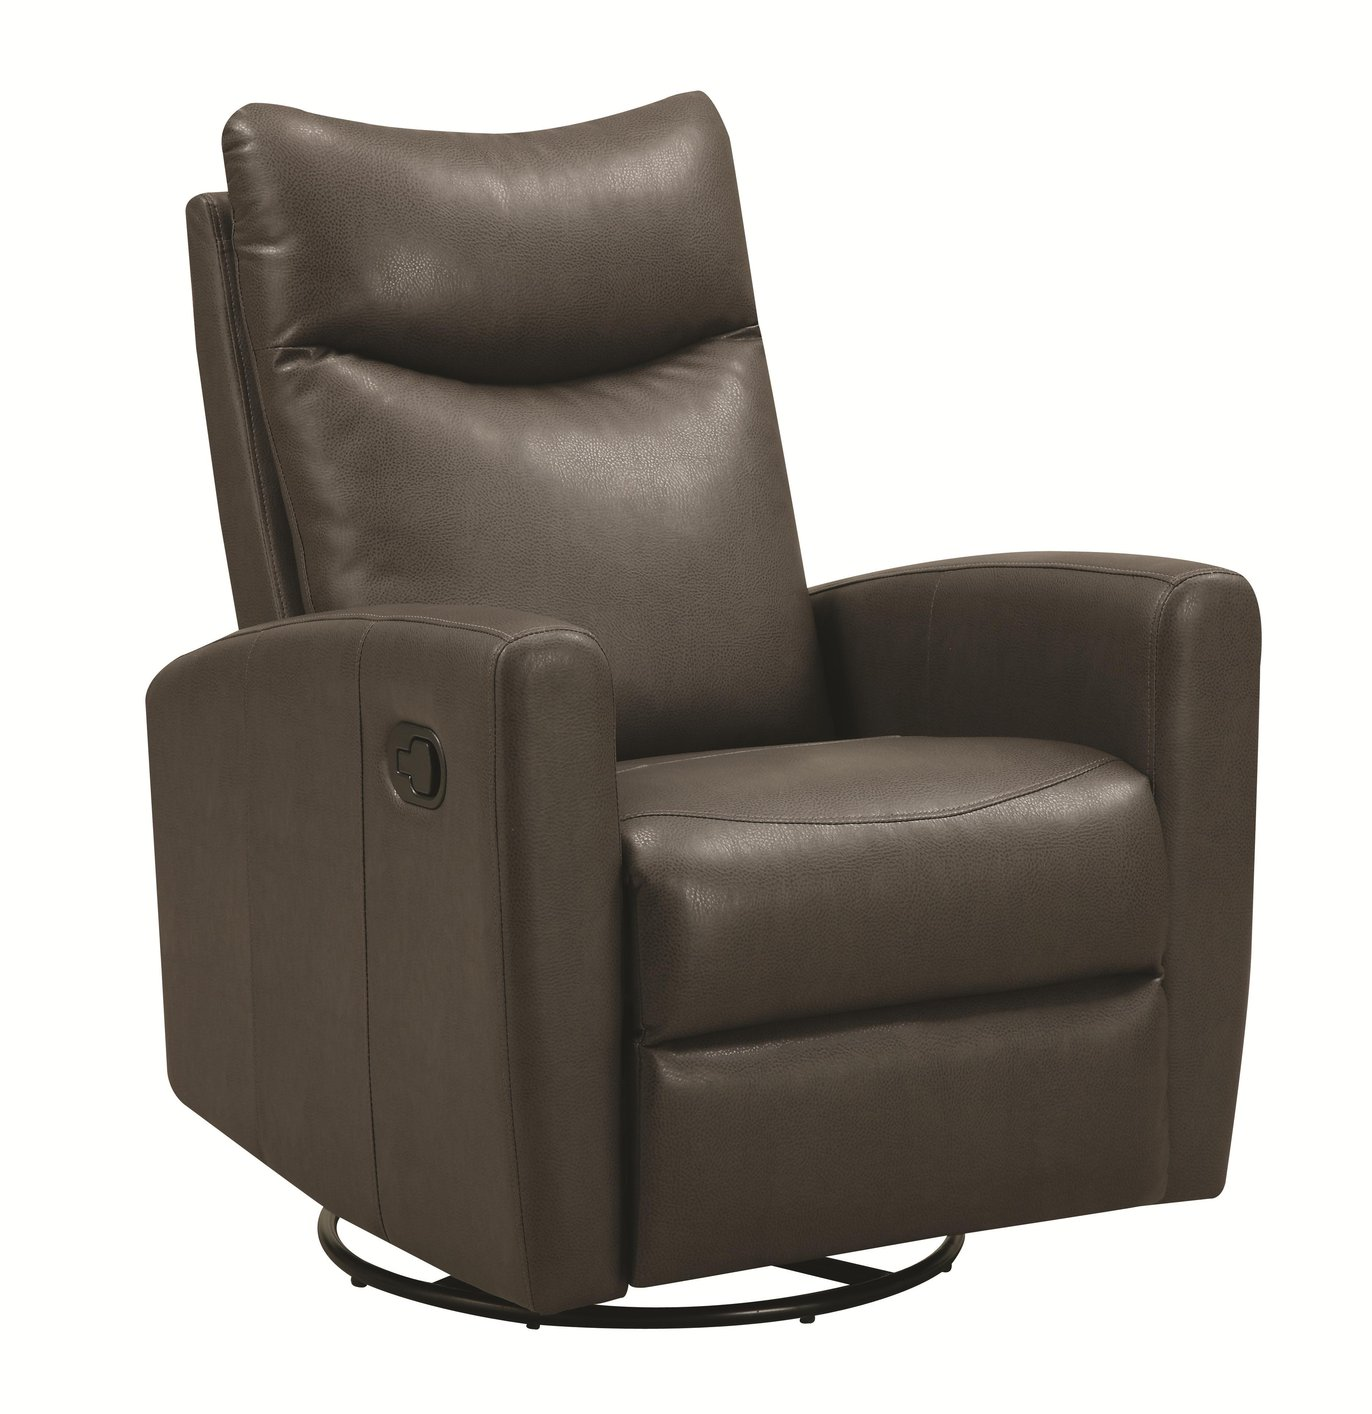 Coaster 600035 Grey Leather Swivel Recliner Steal A Sofa  : grey leather swivel recliner 9 from www.stealasofa.com size 1372 x 1414 jpeg 172kB